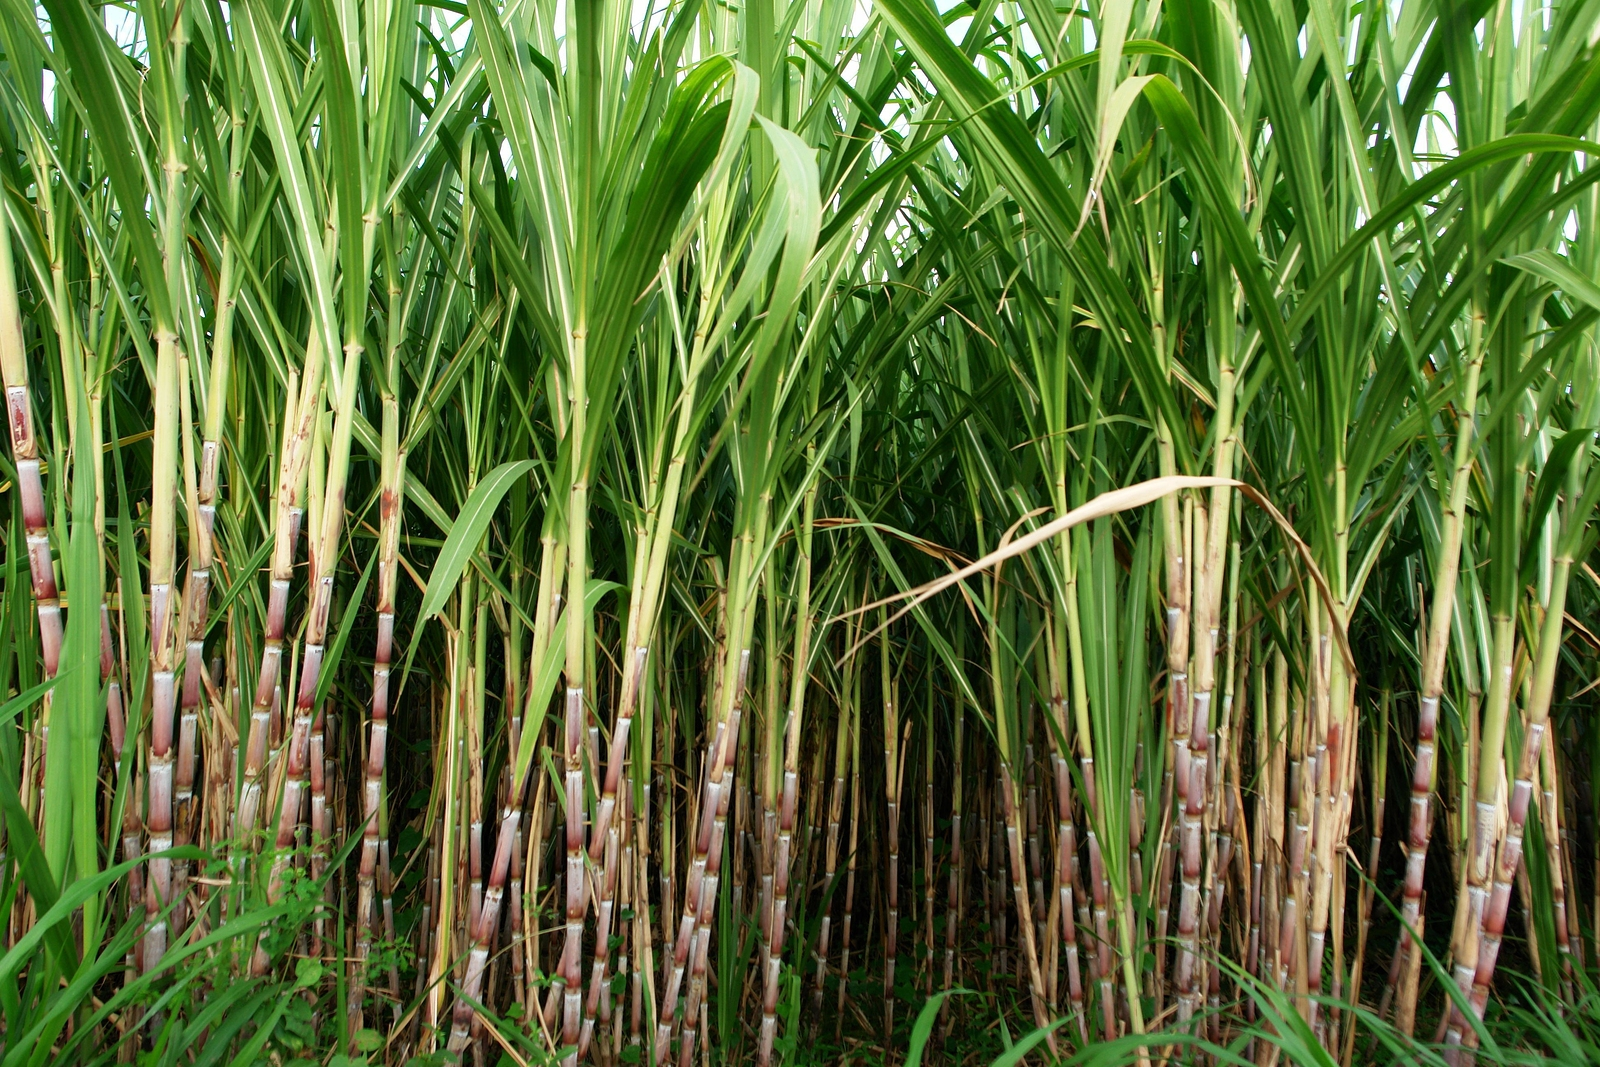 Top 10 Highest Sugarcane Producing Countries